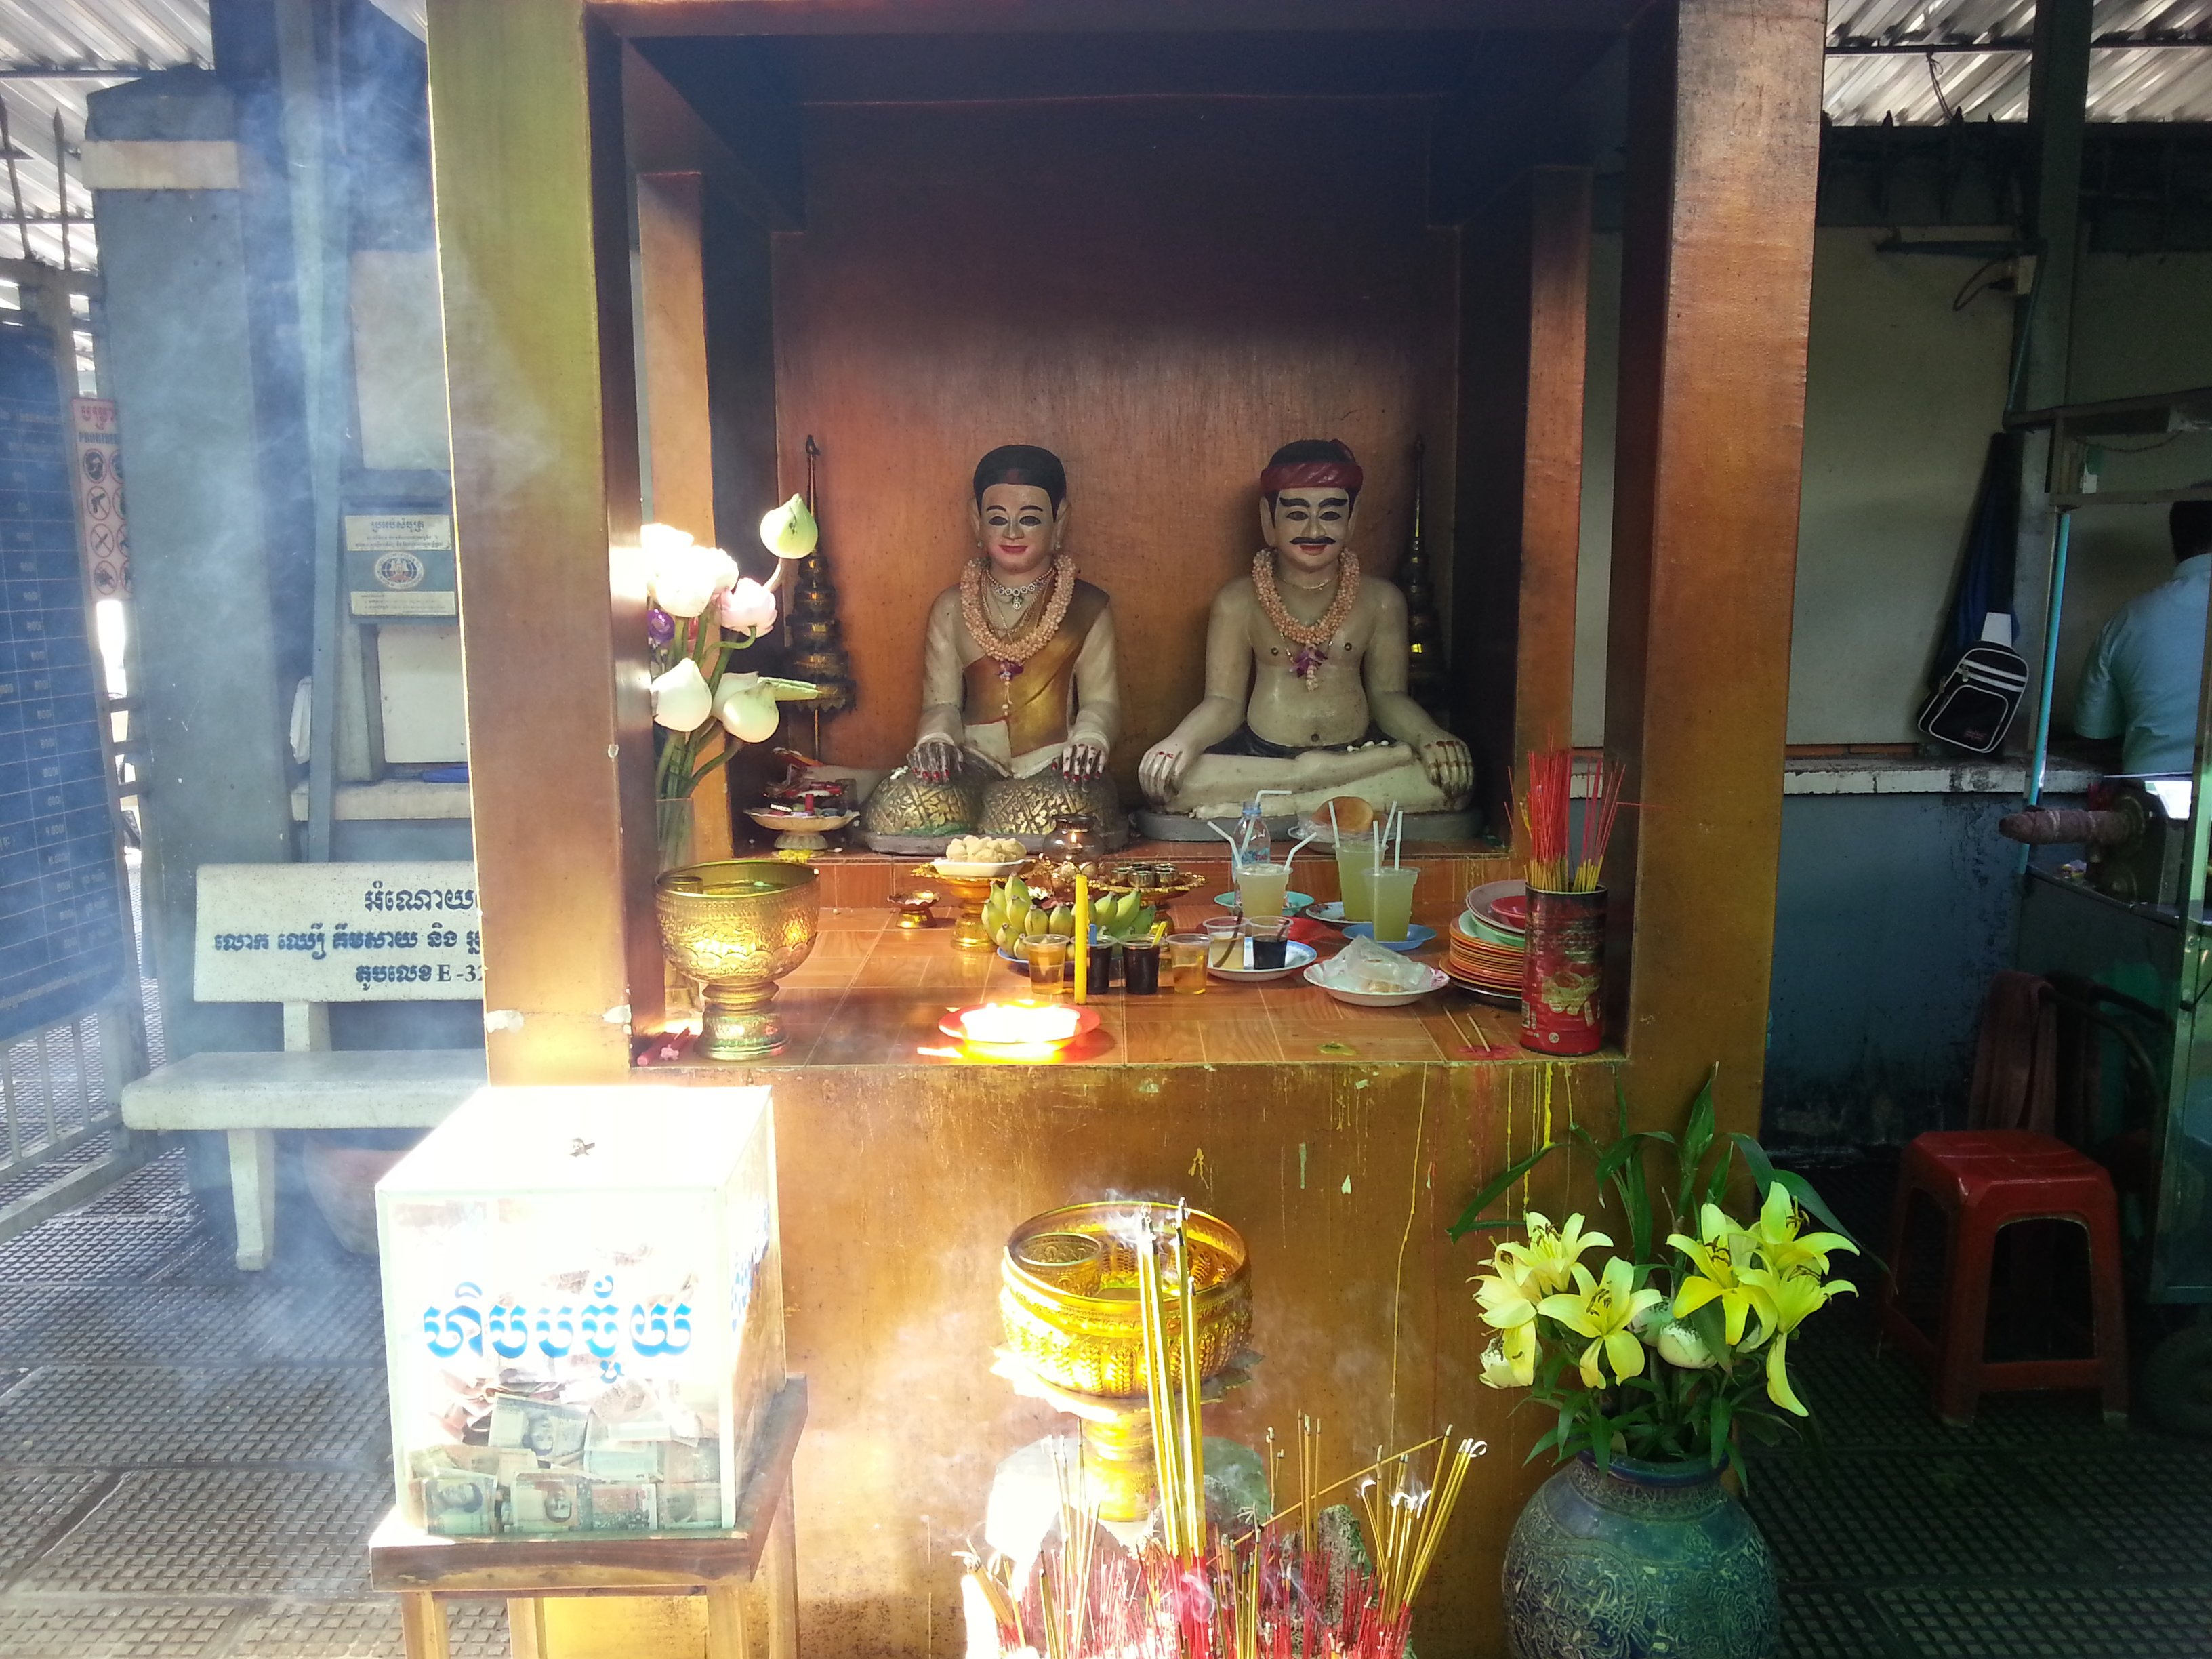 Phnom Penh Central Market has its own shrine